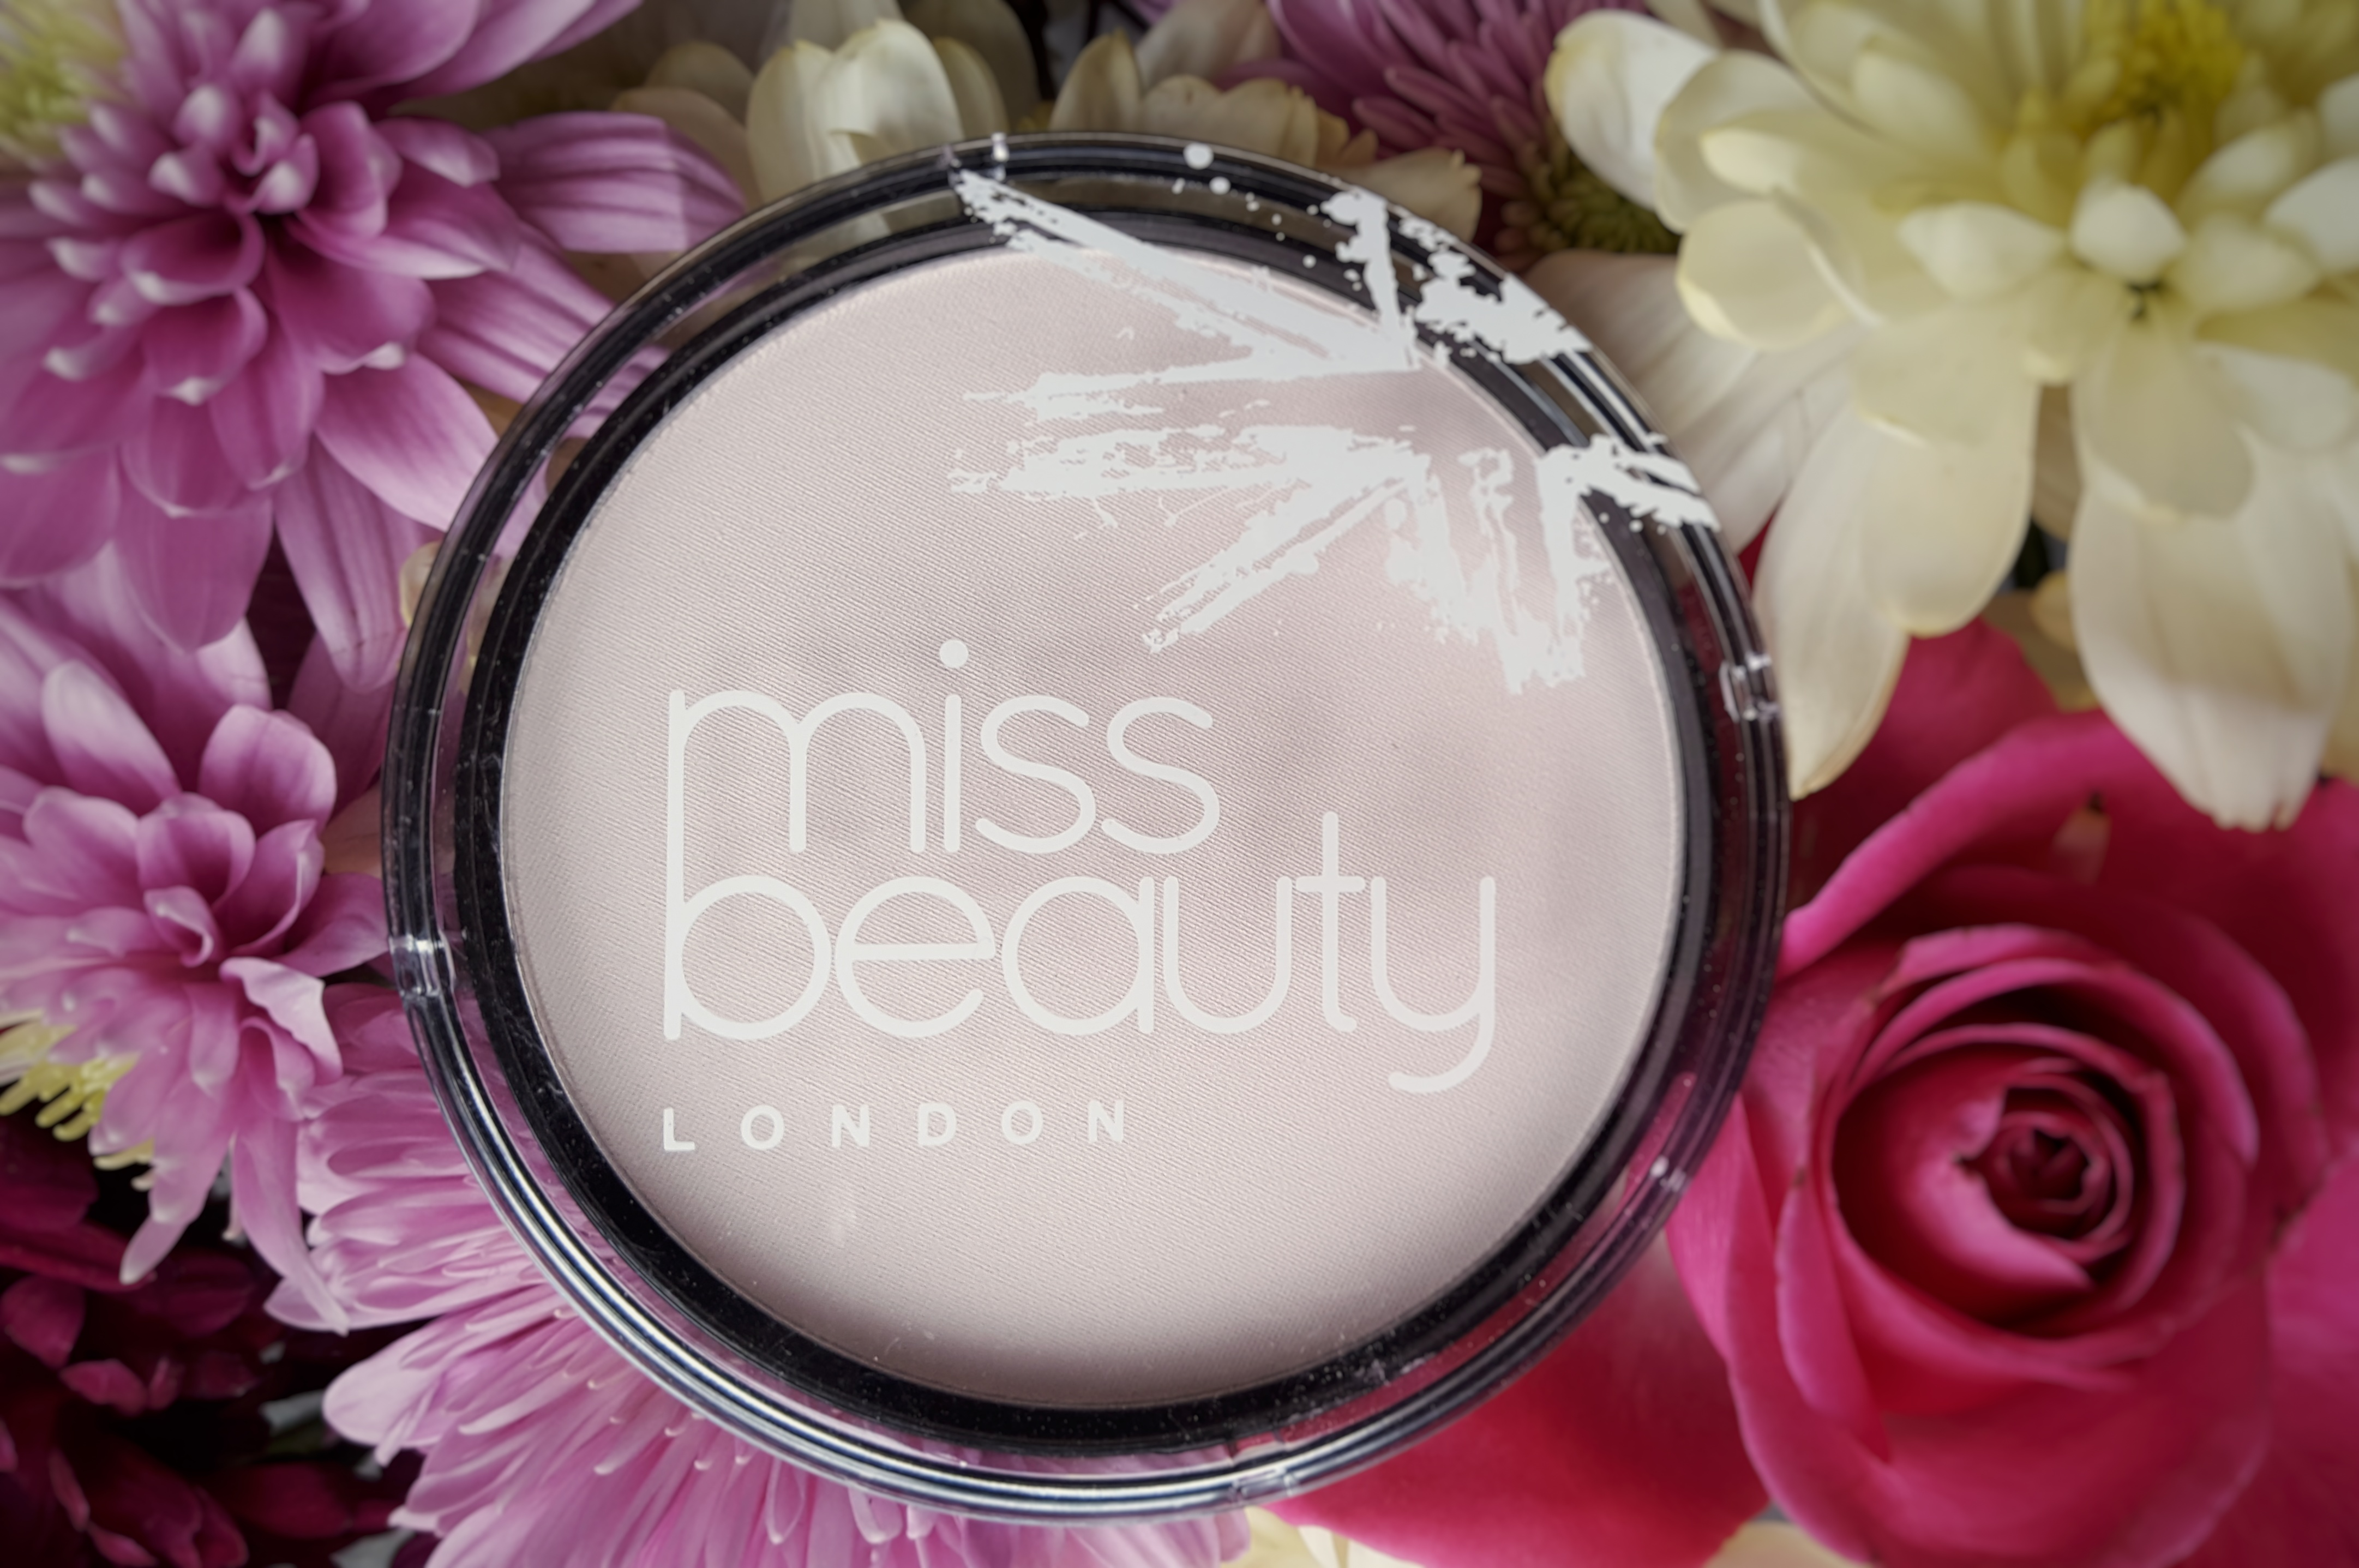 Frugal Friday: Miss Beauty London Pressed Powder Review